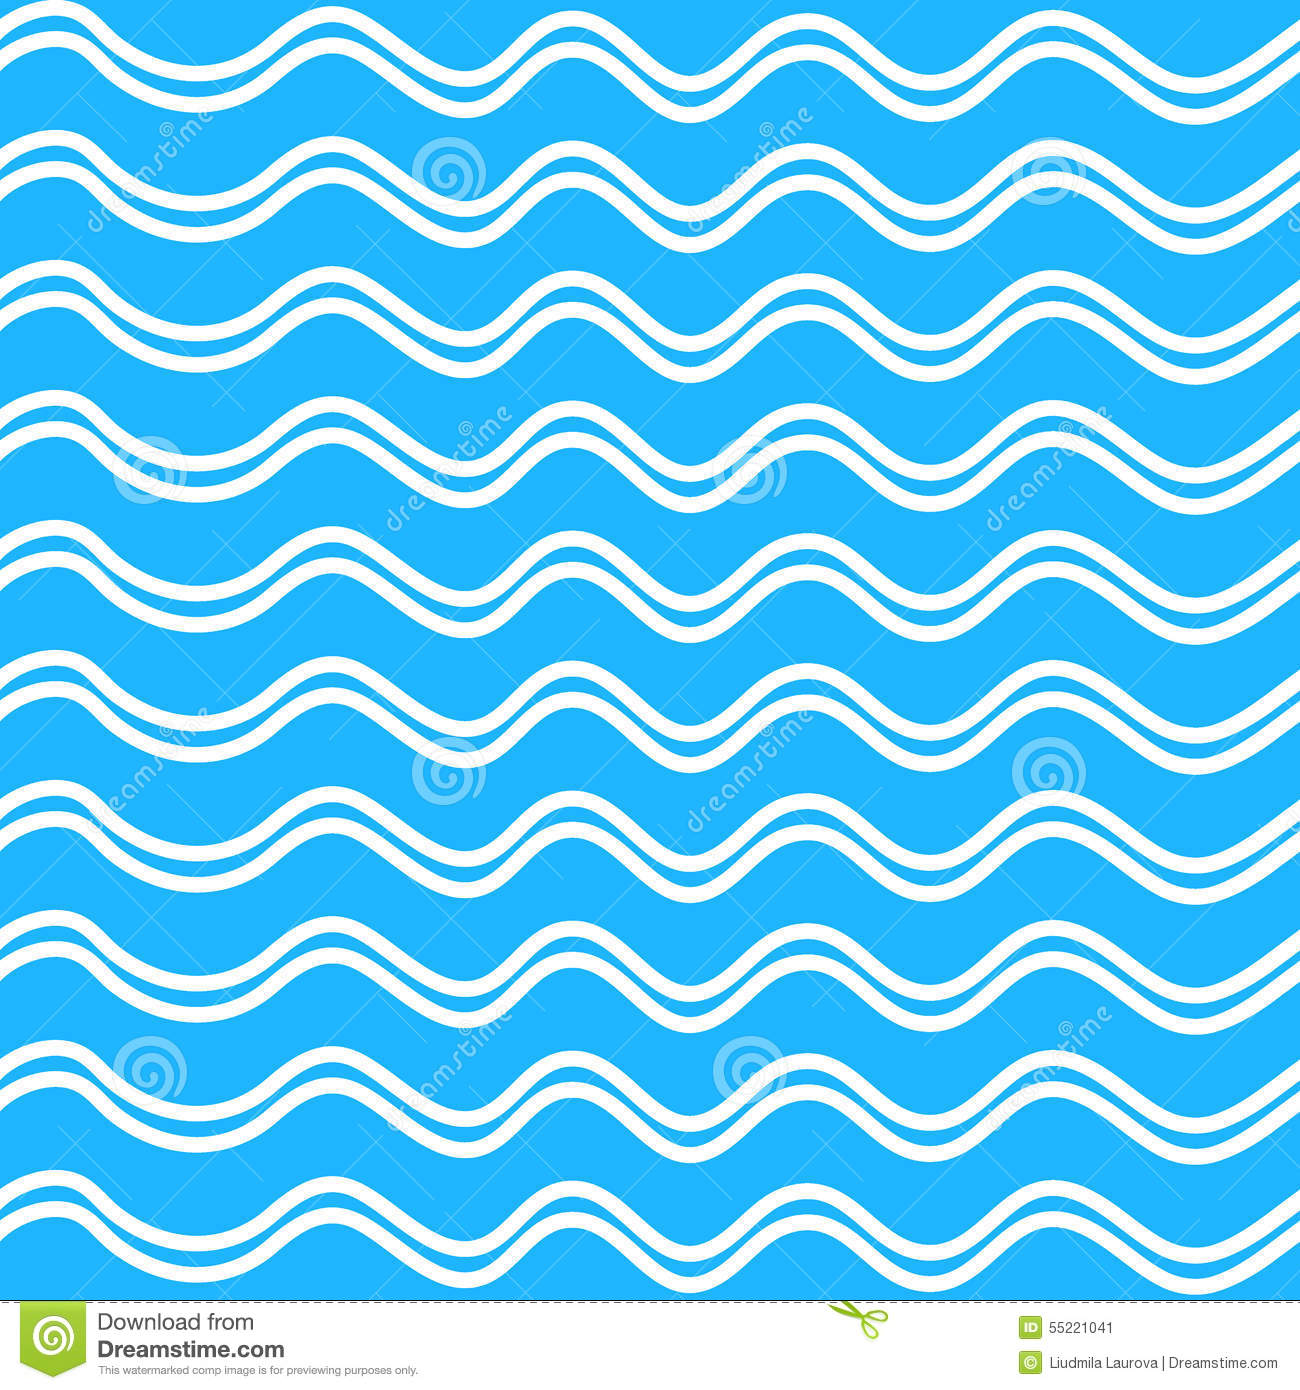 abstract seamless wave pattern on a blue background stock